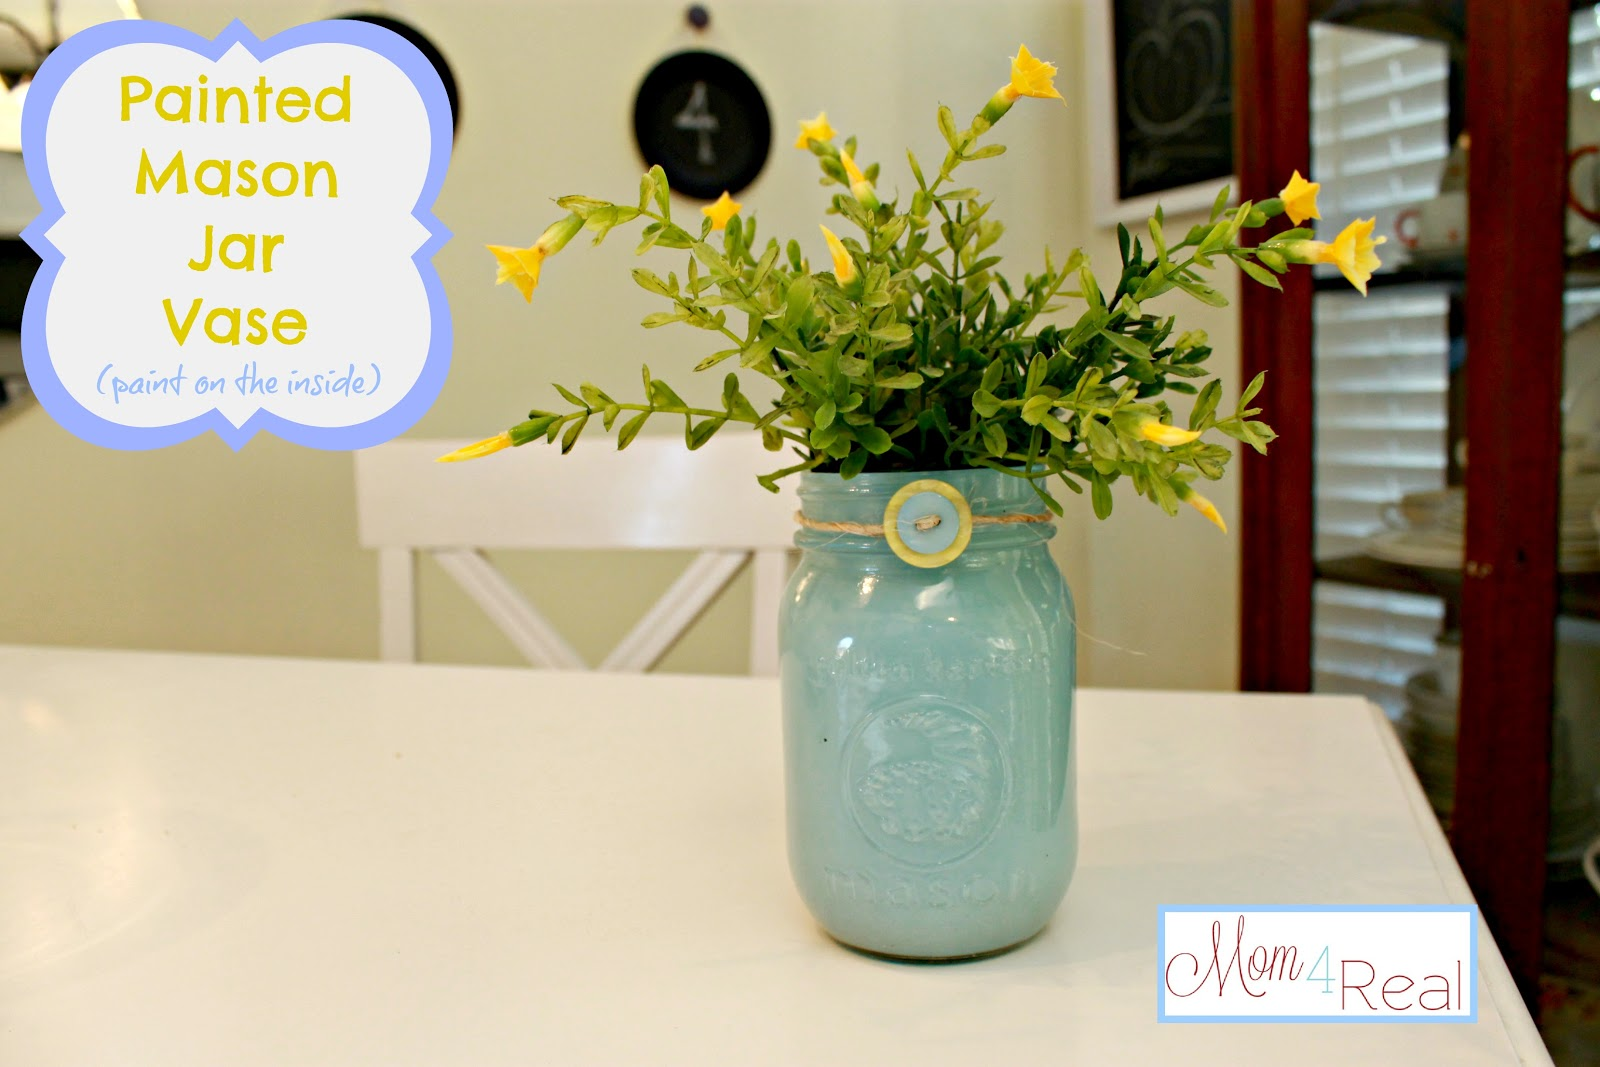 Painted mason jar vase paint on the inside mom 4 real oh i do love me some mason jarsthey are so versatile and can be used in so many ways ive used them to store various spices glitter paint reviewsmspy